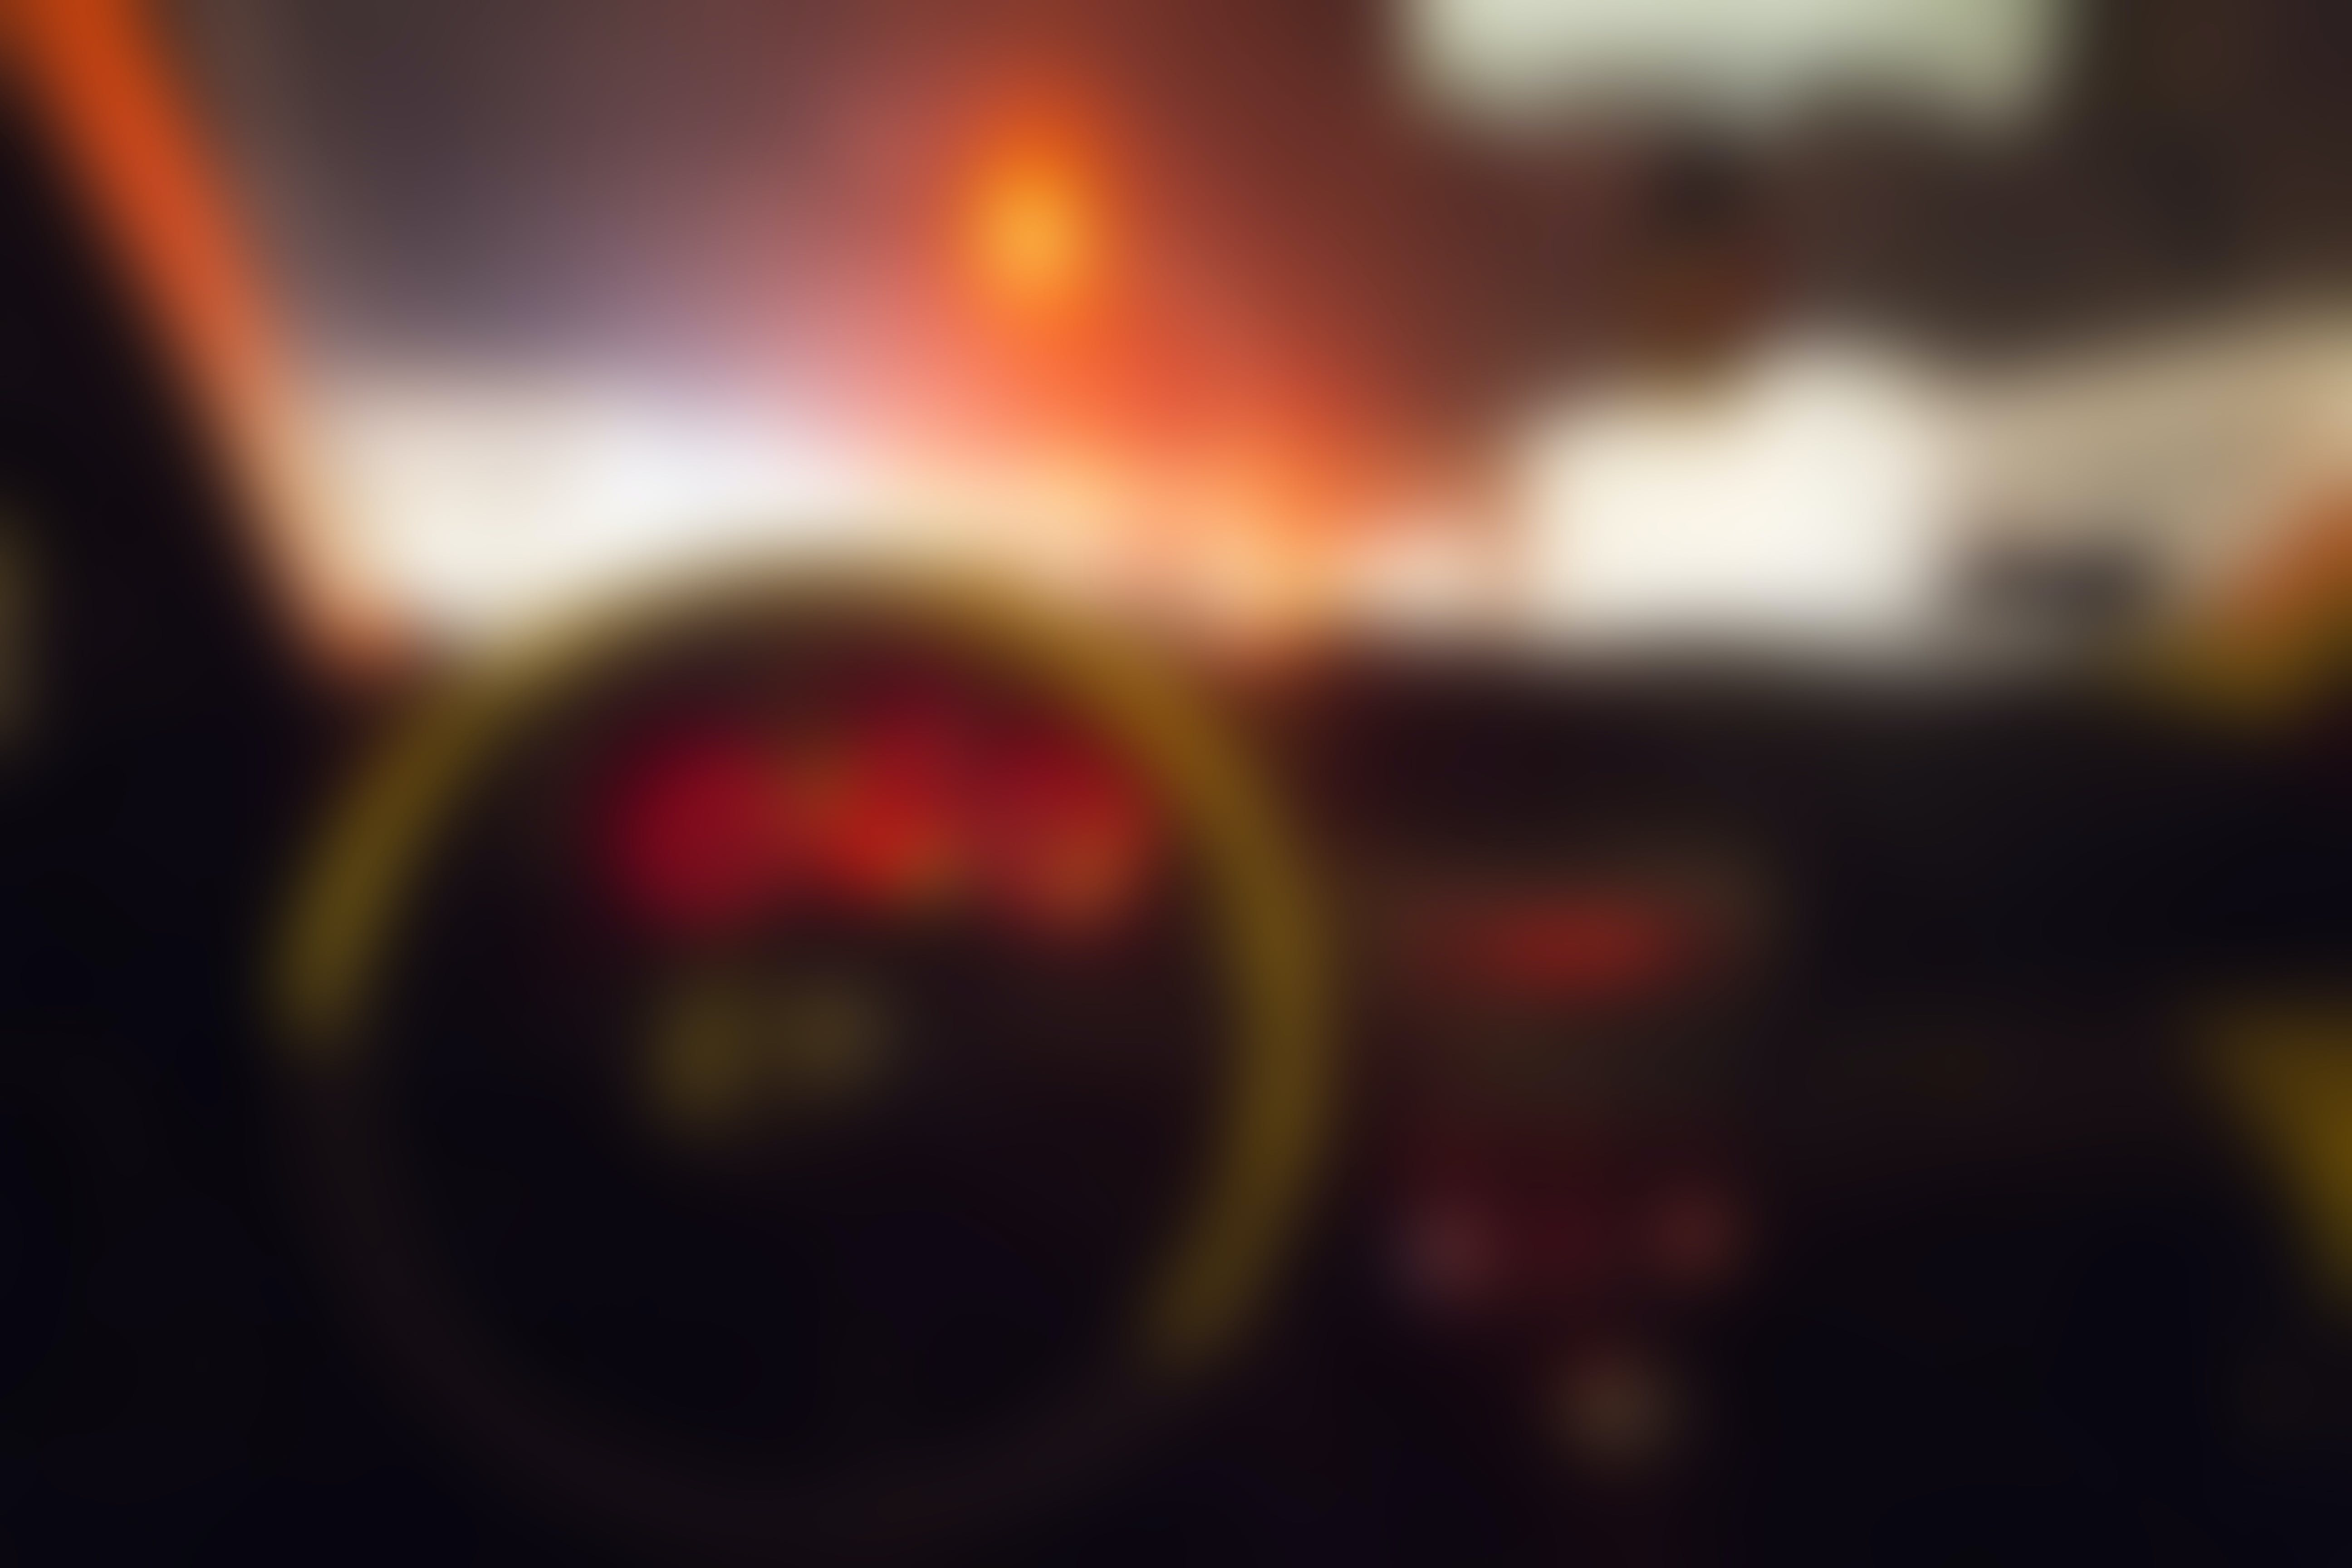 Free stock photo of background, blur, blurred, car